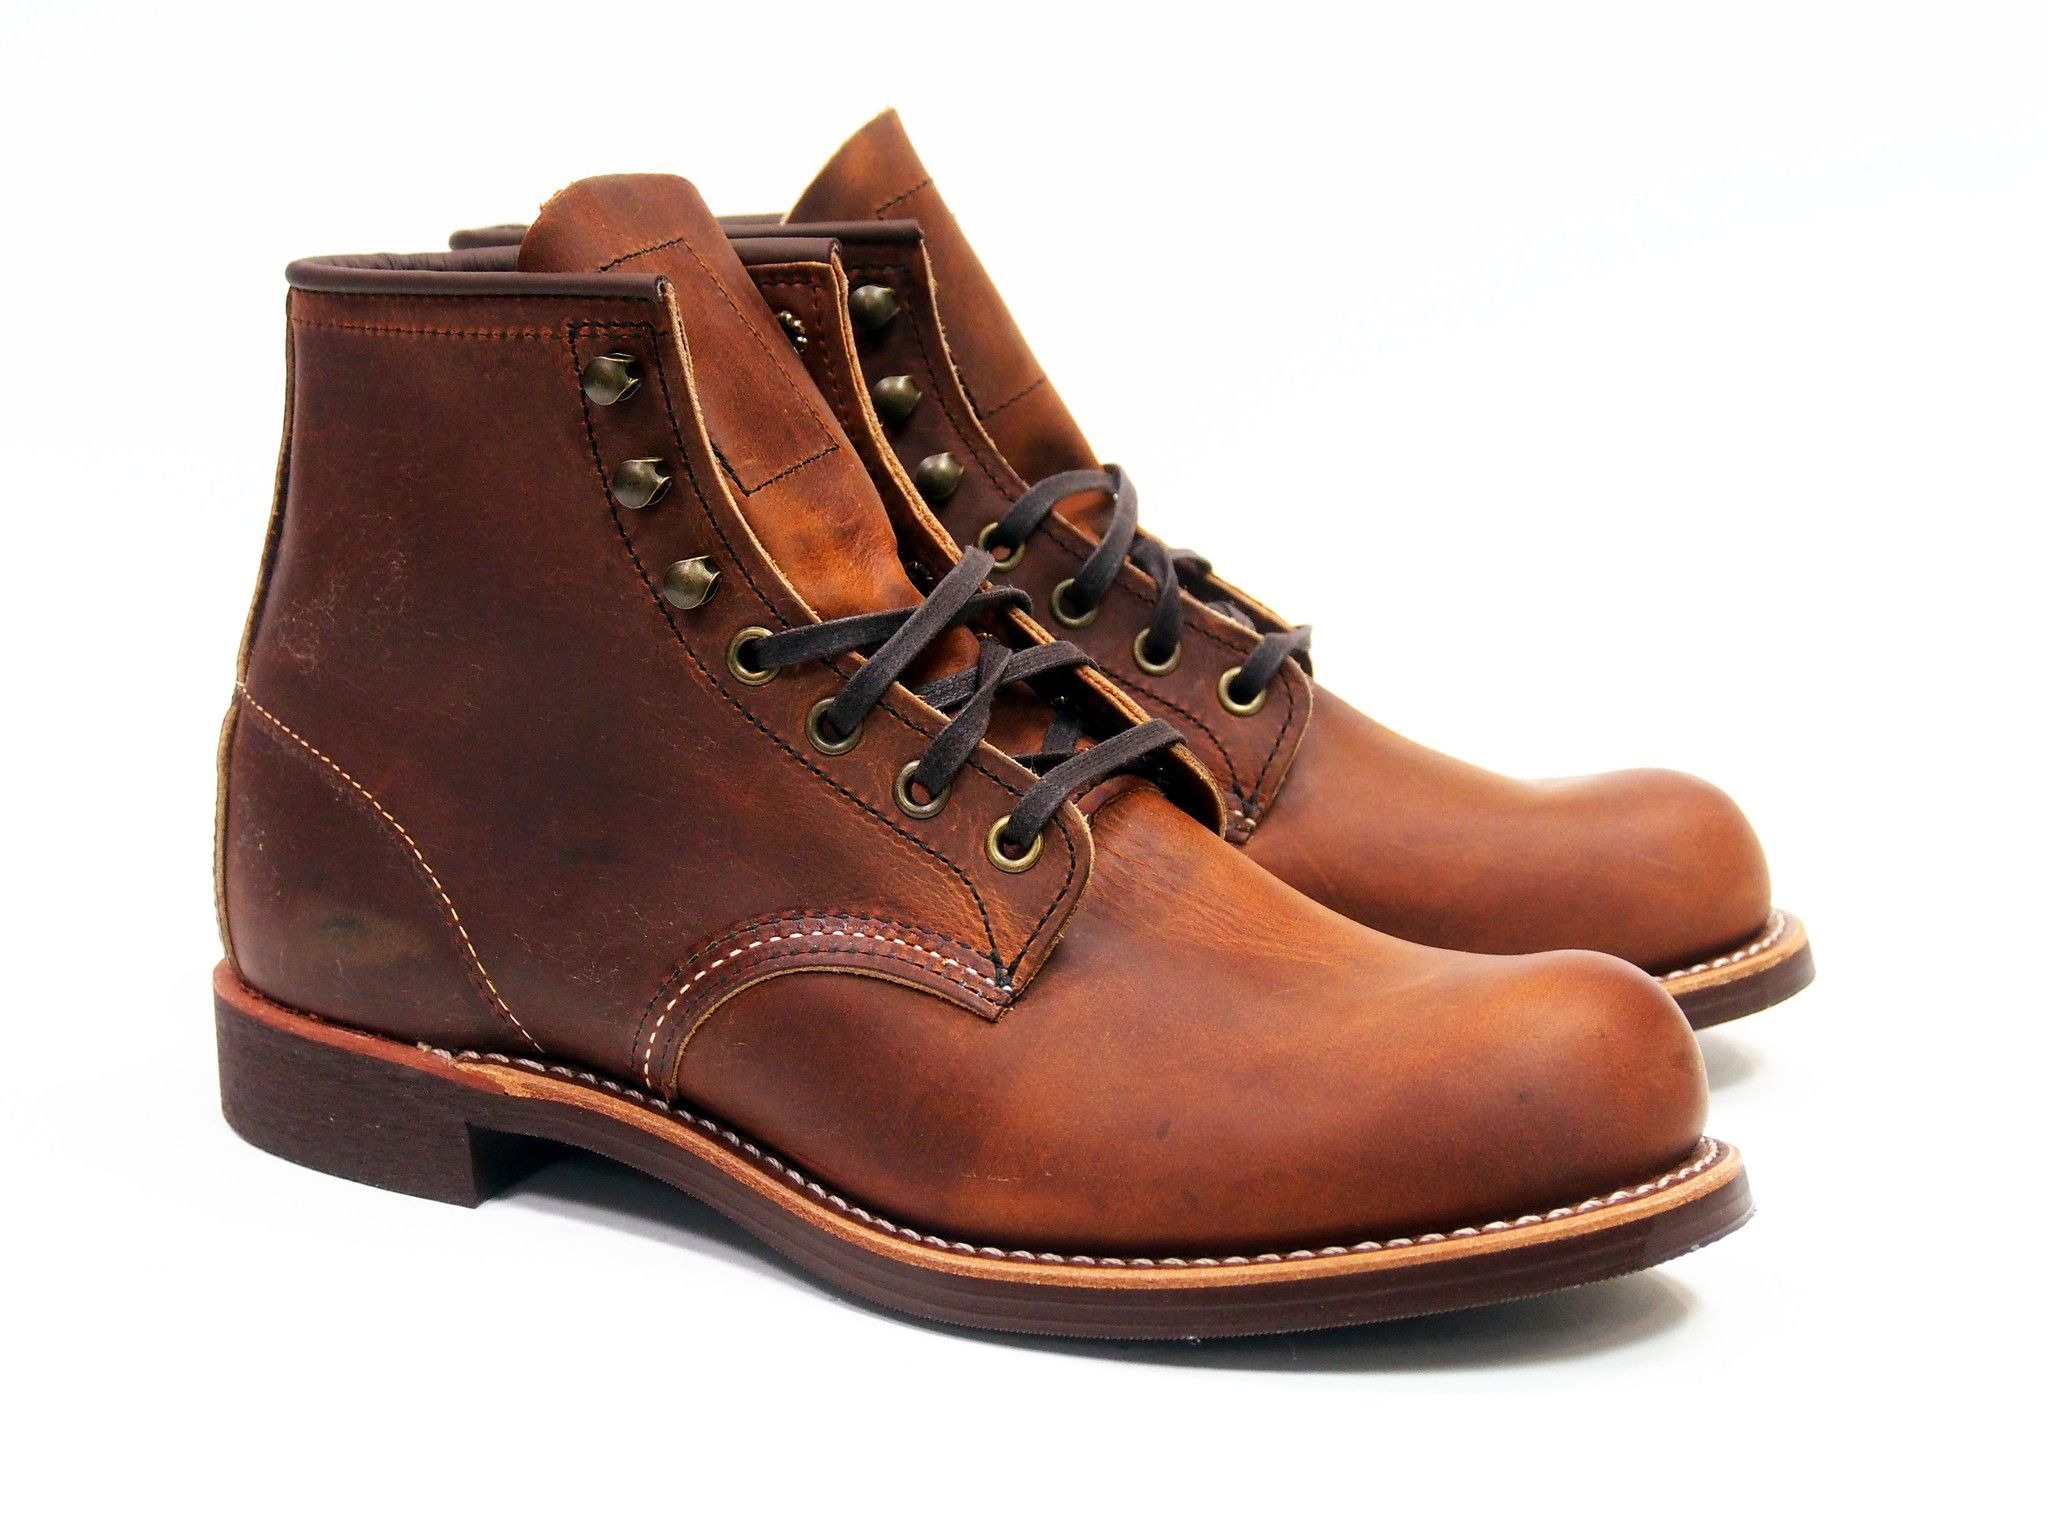 Red Wing Heritage Blacksmith Boots 3343 In 2019 Projects